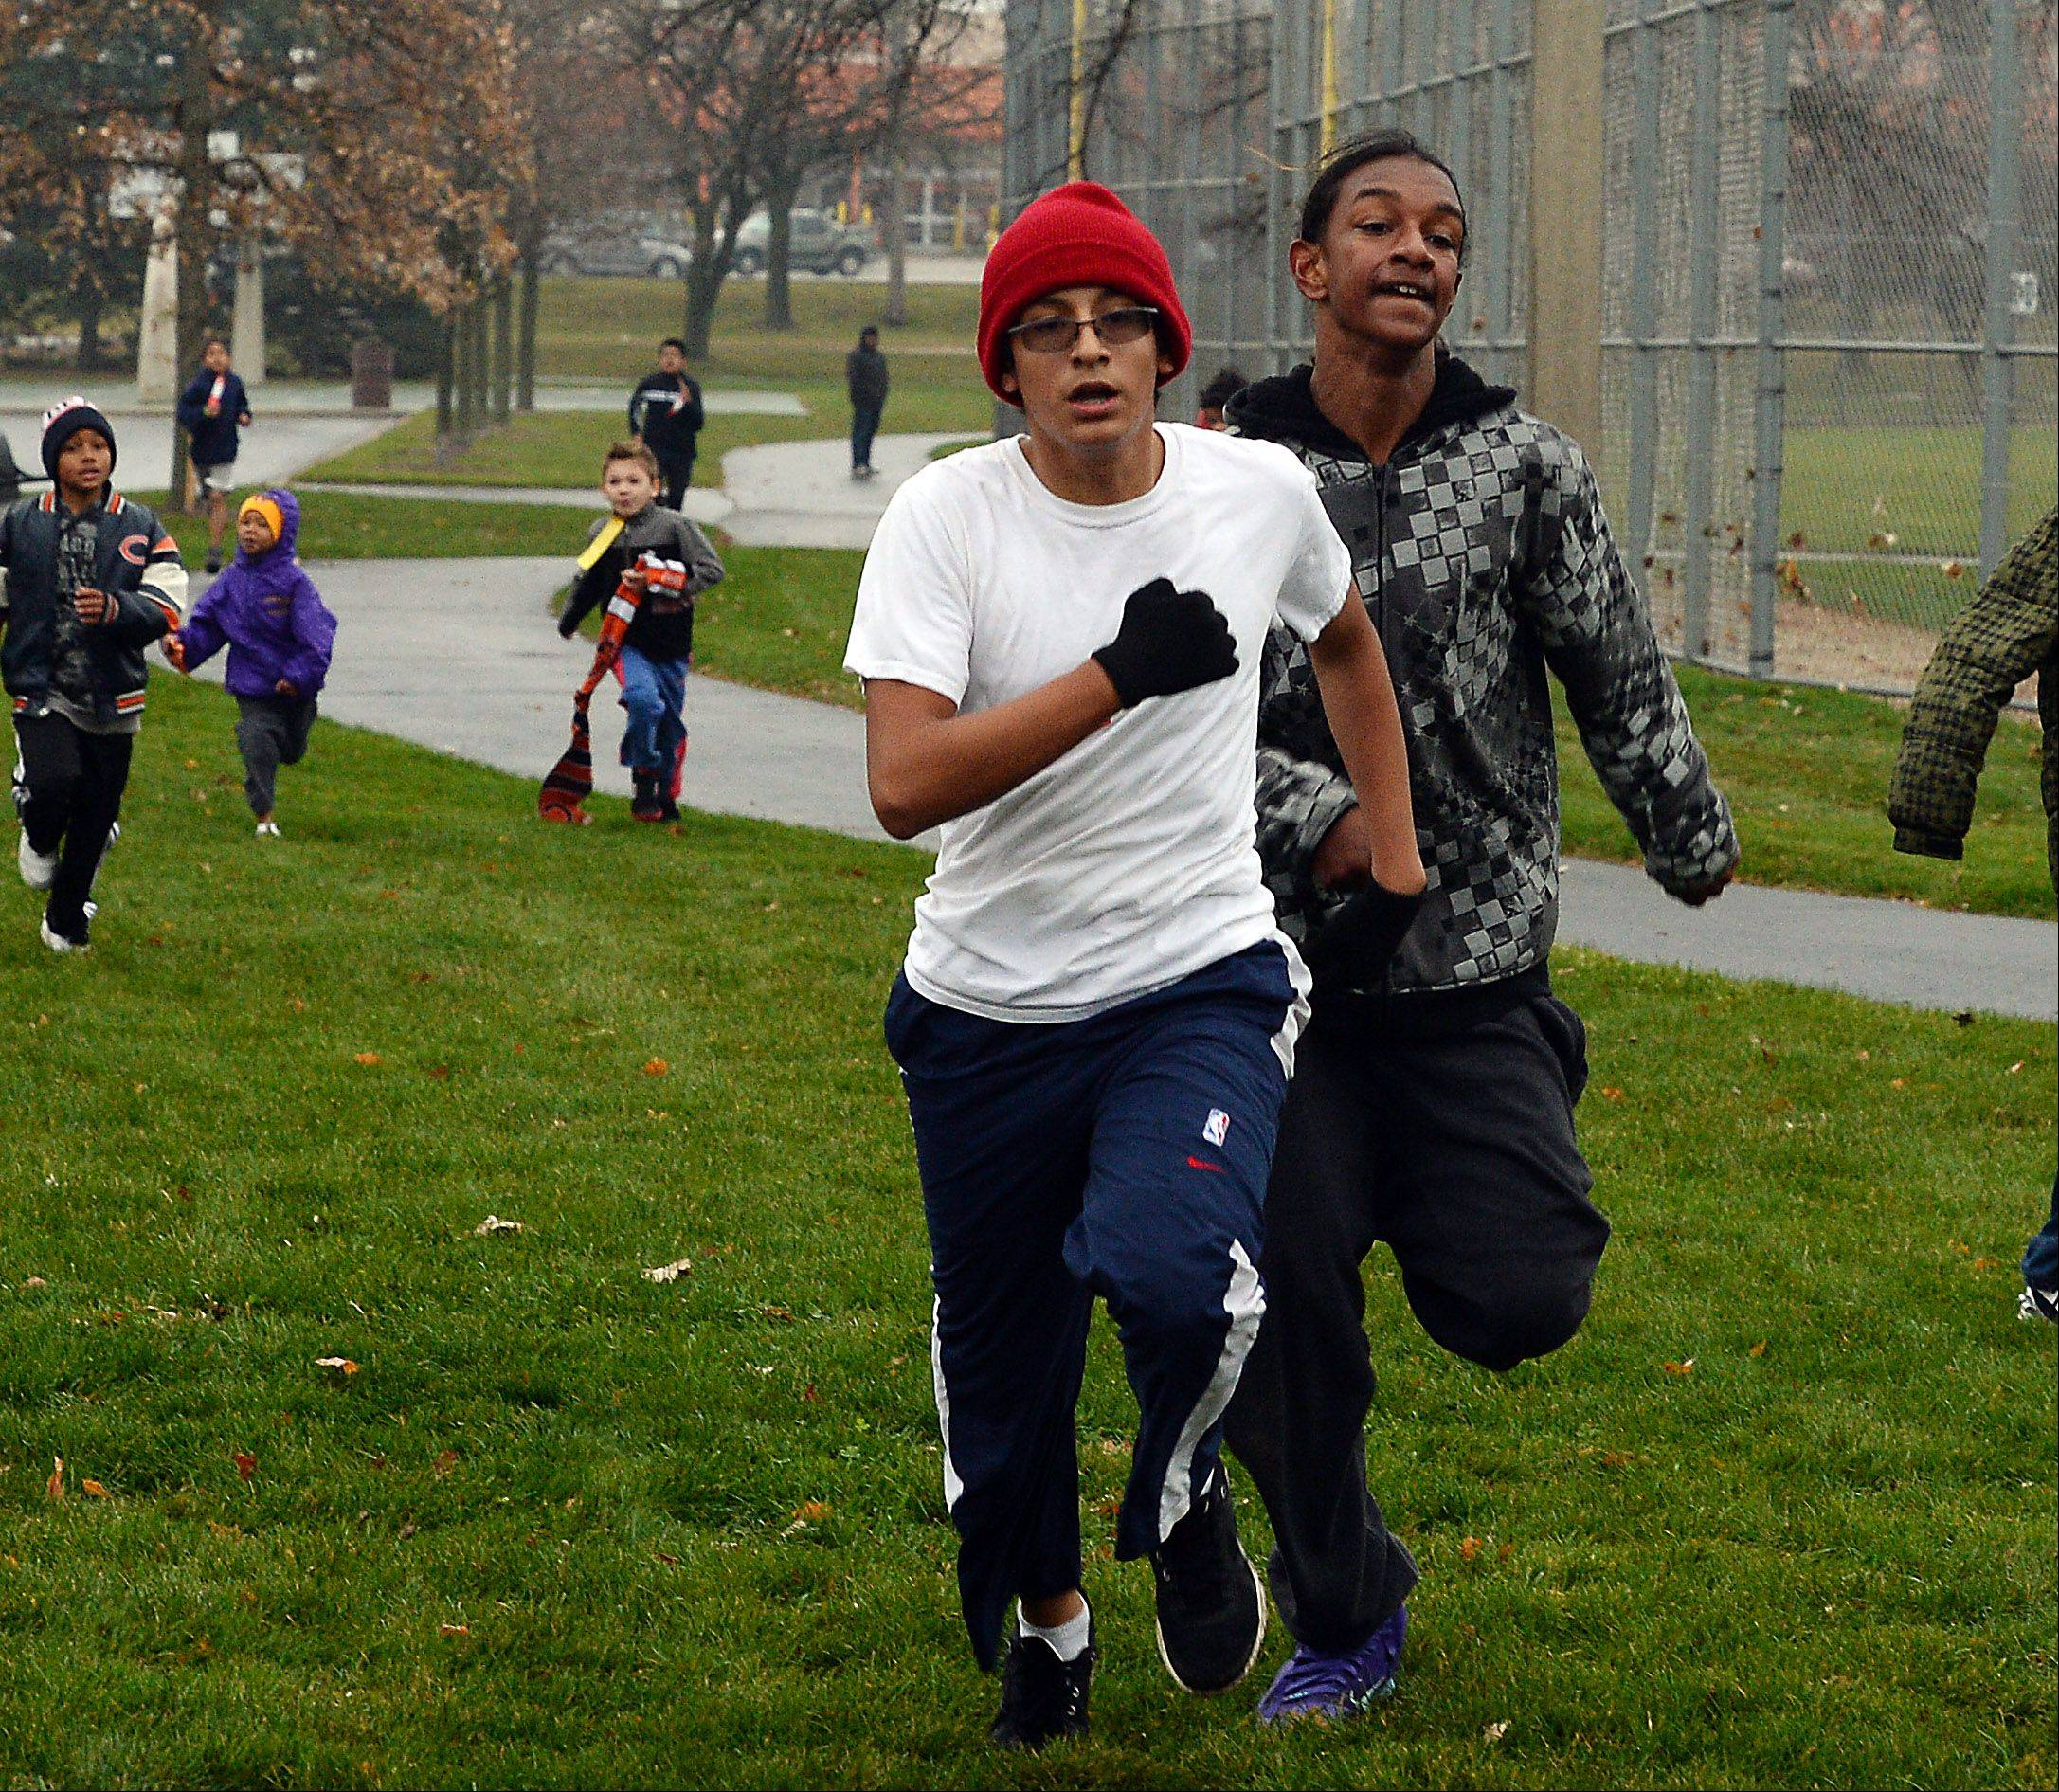 In a photo finish, Jose Abonce, 13, left, of Waukegan claims victory over Sincere Geertz, 13, of Waukegan in the 3/8 mile Turkey Trot for their age group at Belvidere Park on Saturday.